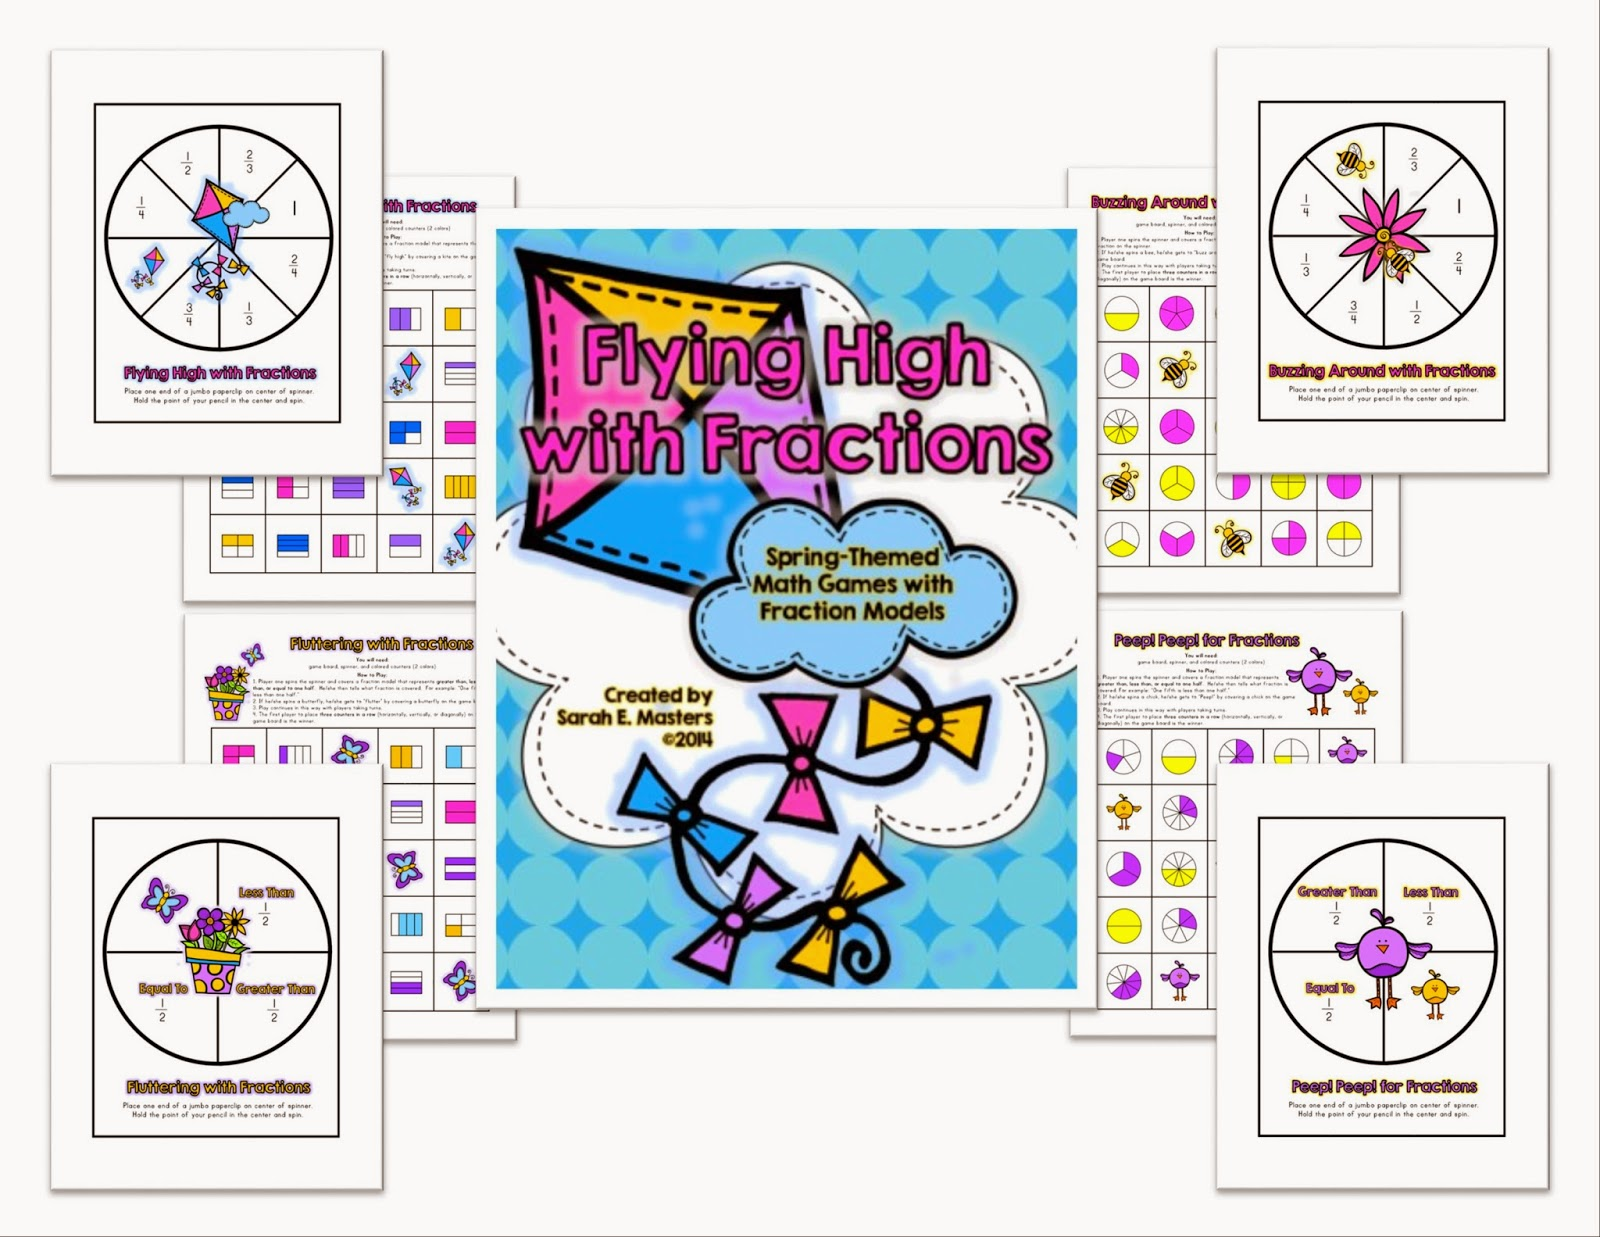 http://www.teacherspayteachers.com/Product/Flying-High-with-Fractions-Fraction-Math-Games-Math-Centers-1180107